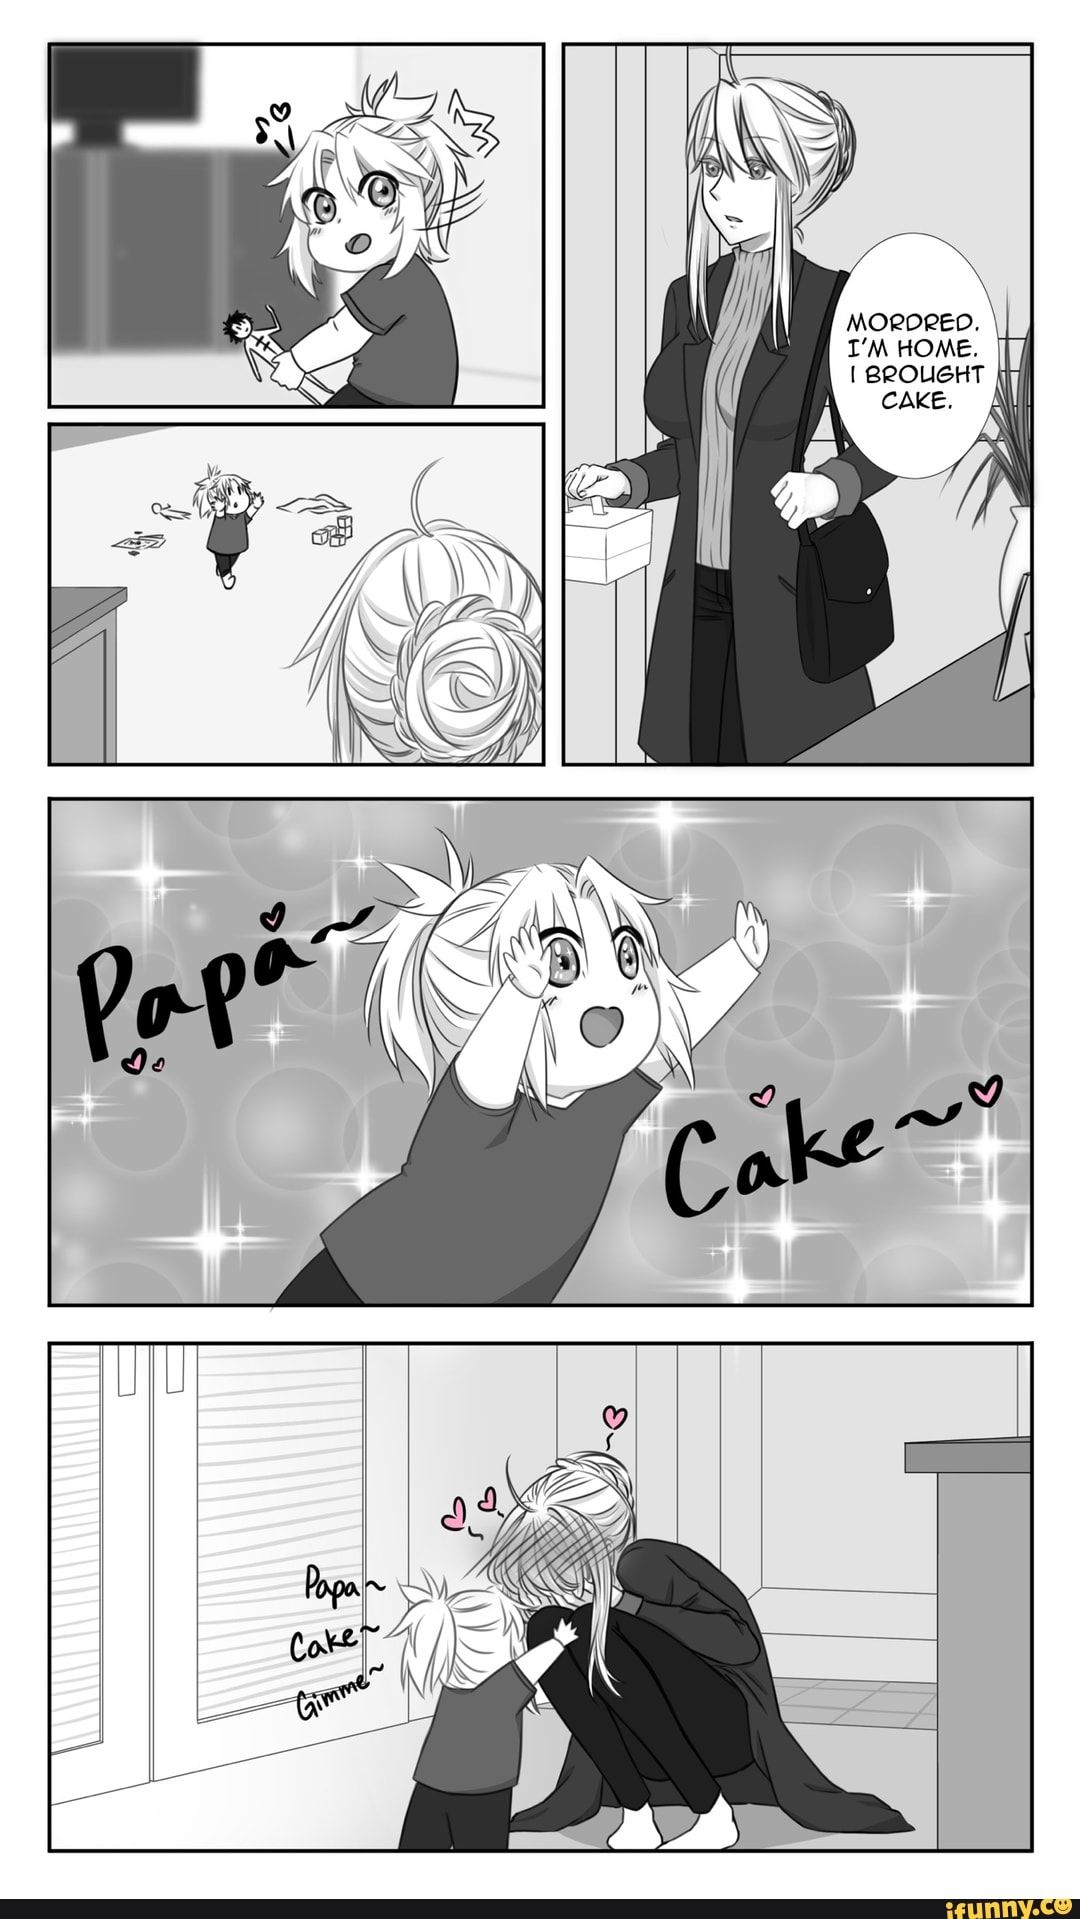 Fategrandorder memes. Best Collection of funny